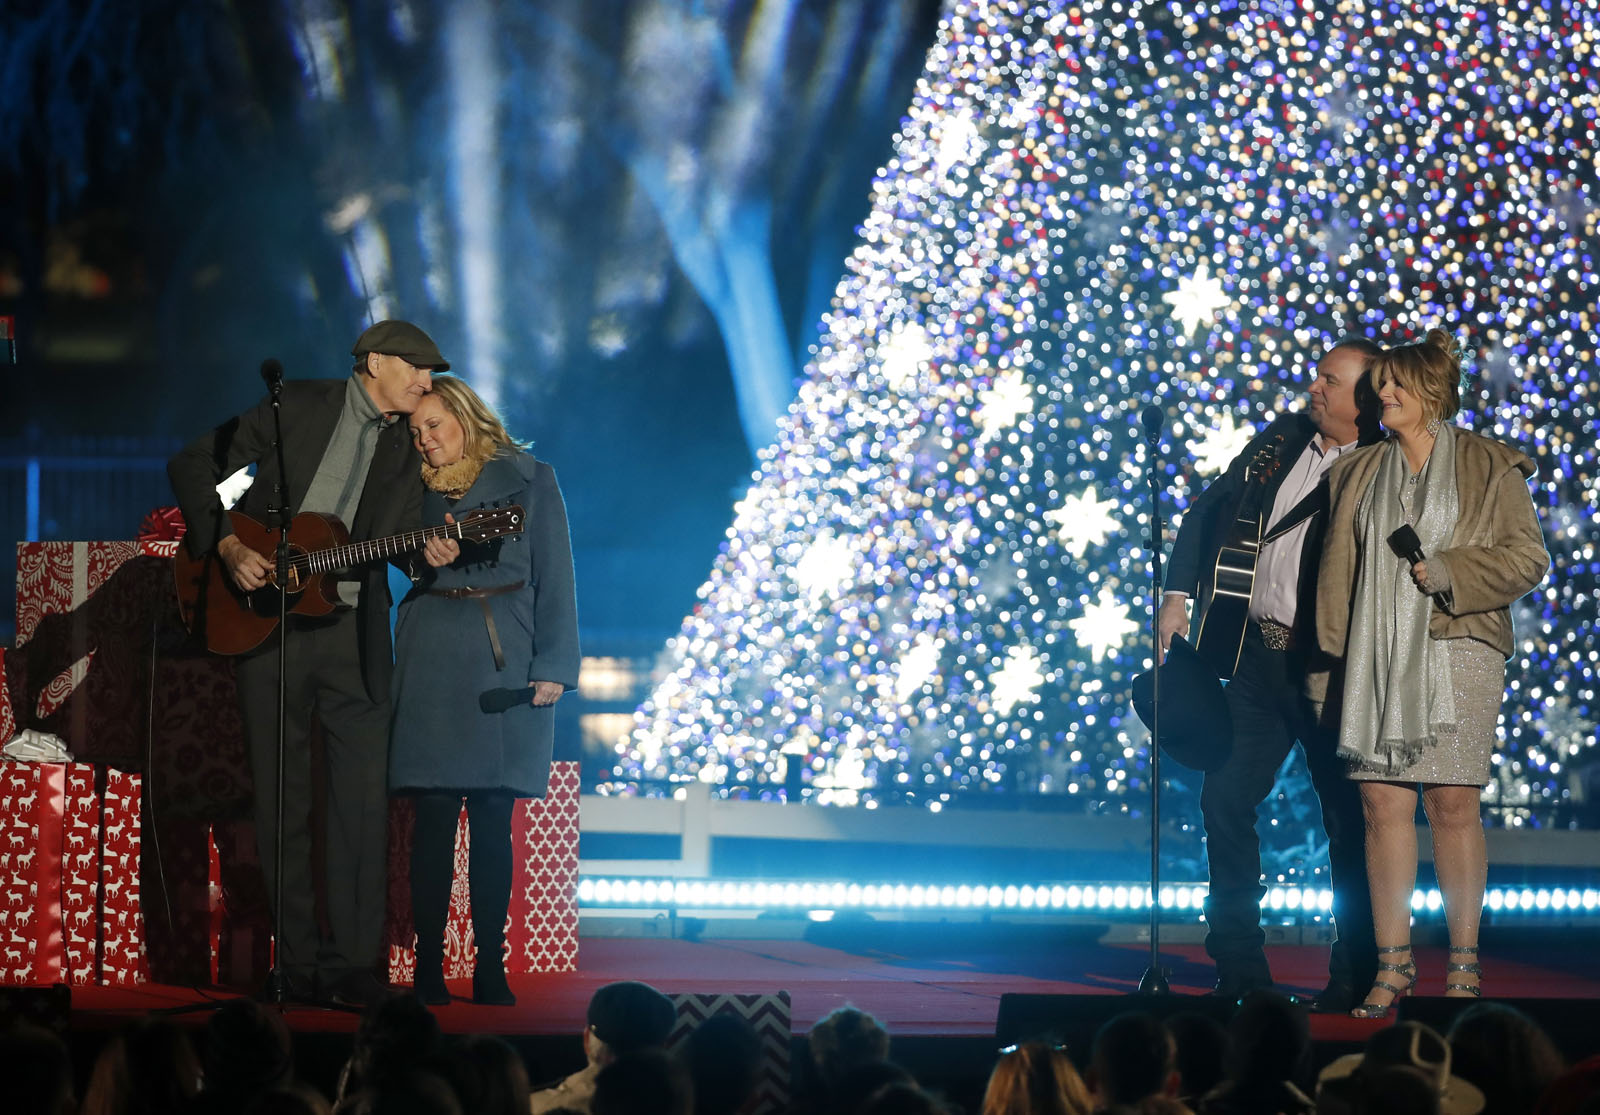 """James Taylor, left, with his wife Caroline """"Kim"""" Smedvig, Garth Brooks, and Tricia Yearwood perform during the lighting ceremony for the 2016 National Christmas Tree on the Ellipse near the White House, Thursday, Dec. 1, 2016 in Washington. (AP Photo/Alex Brandon)"""